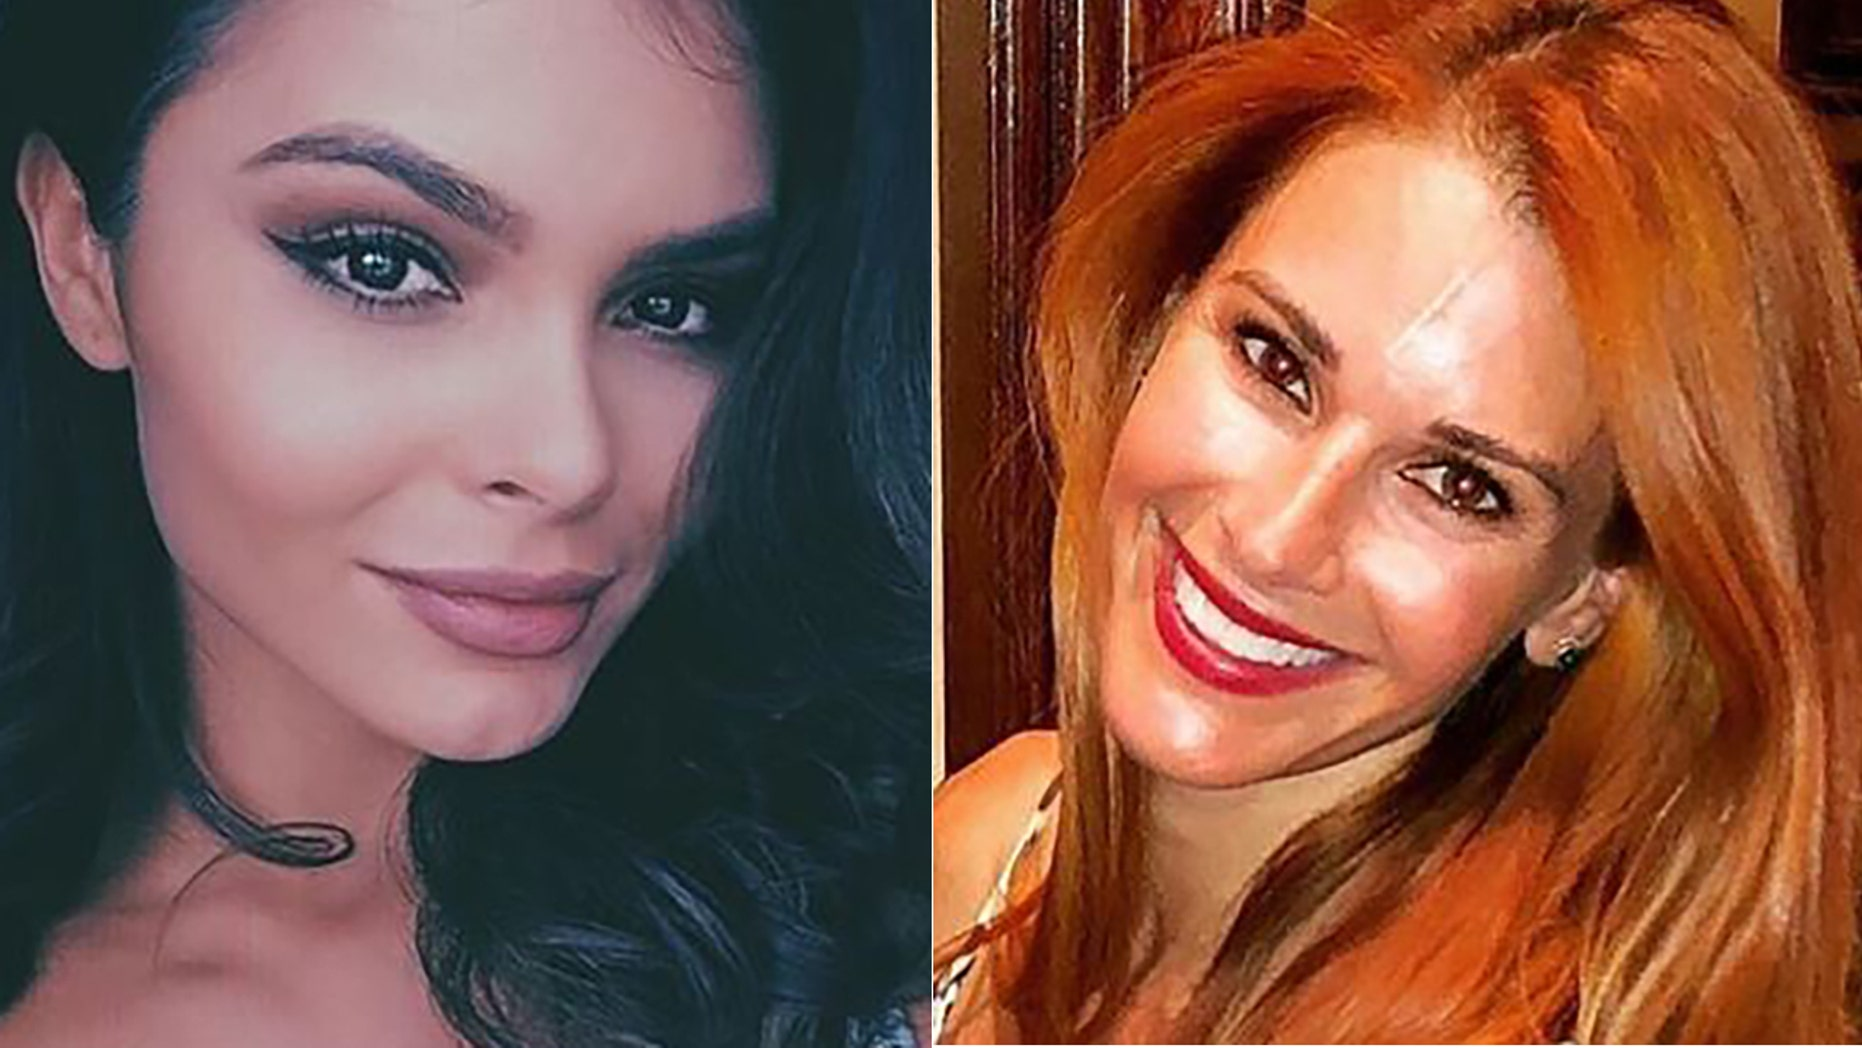 Alana Campos, left, and Jaime Edmondson-Longoria are among the models named in the lawsuit.